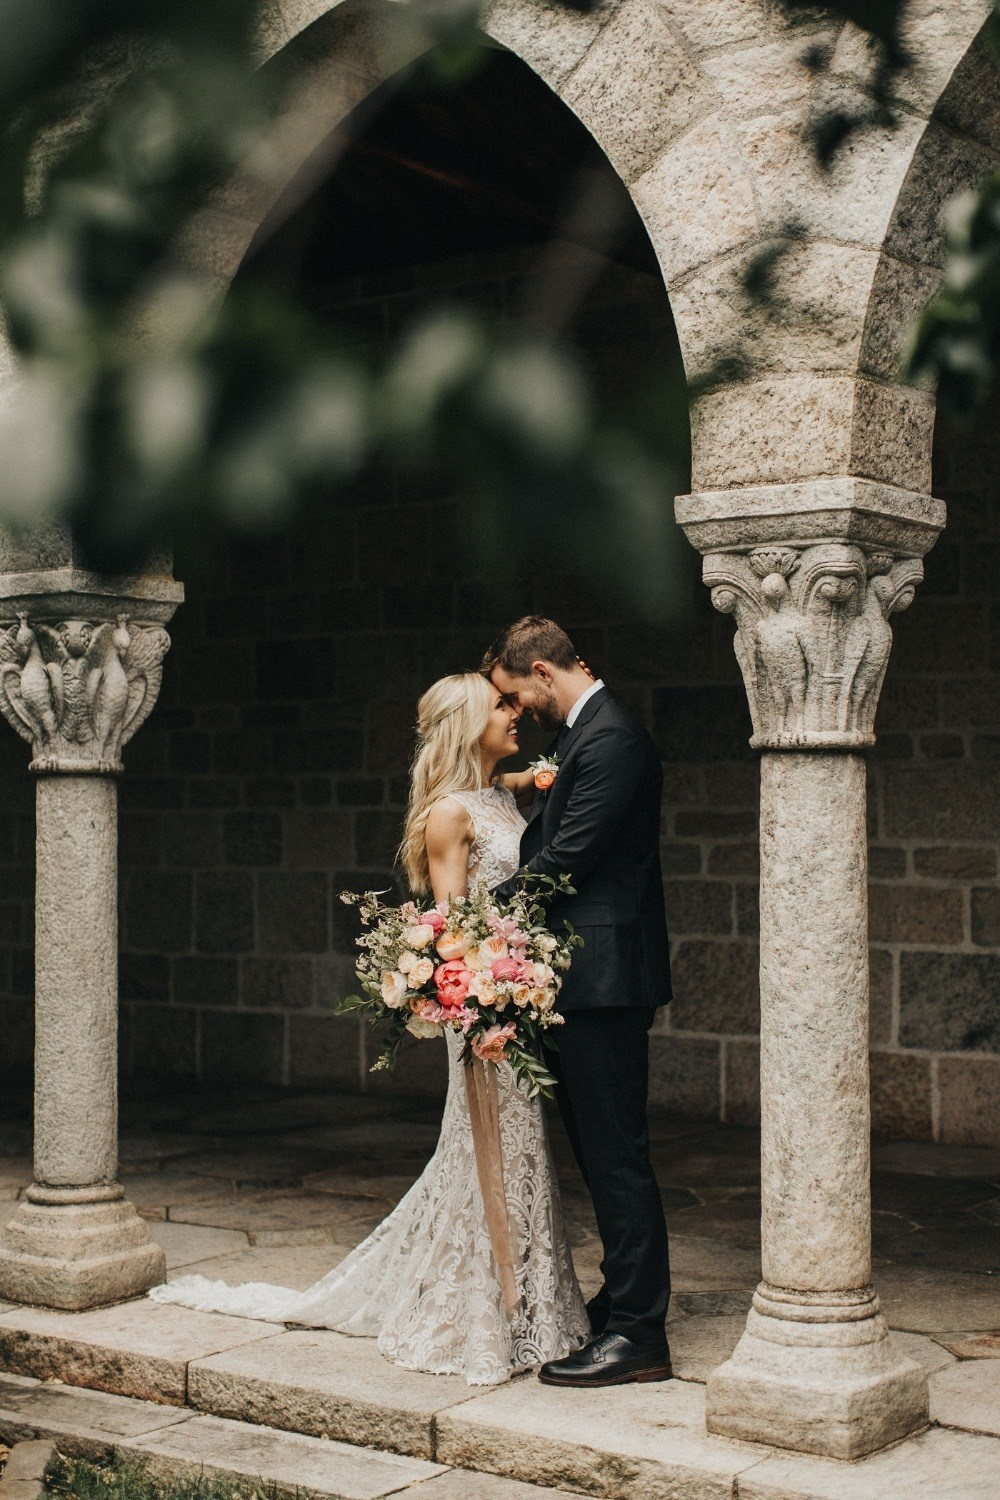 bride and groom share a moment in a secret garden